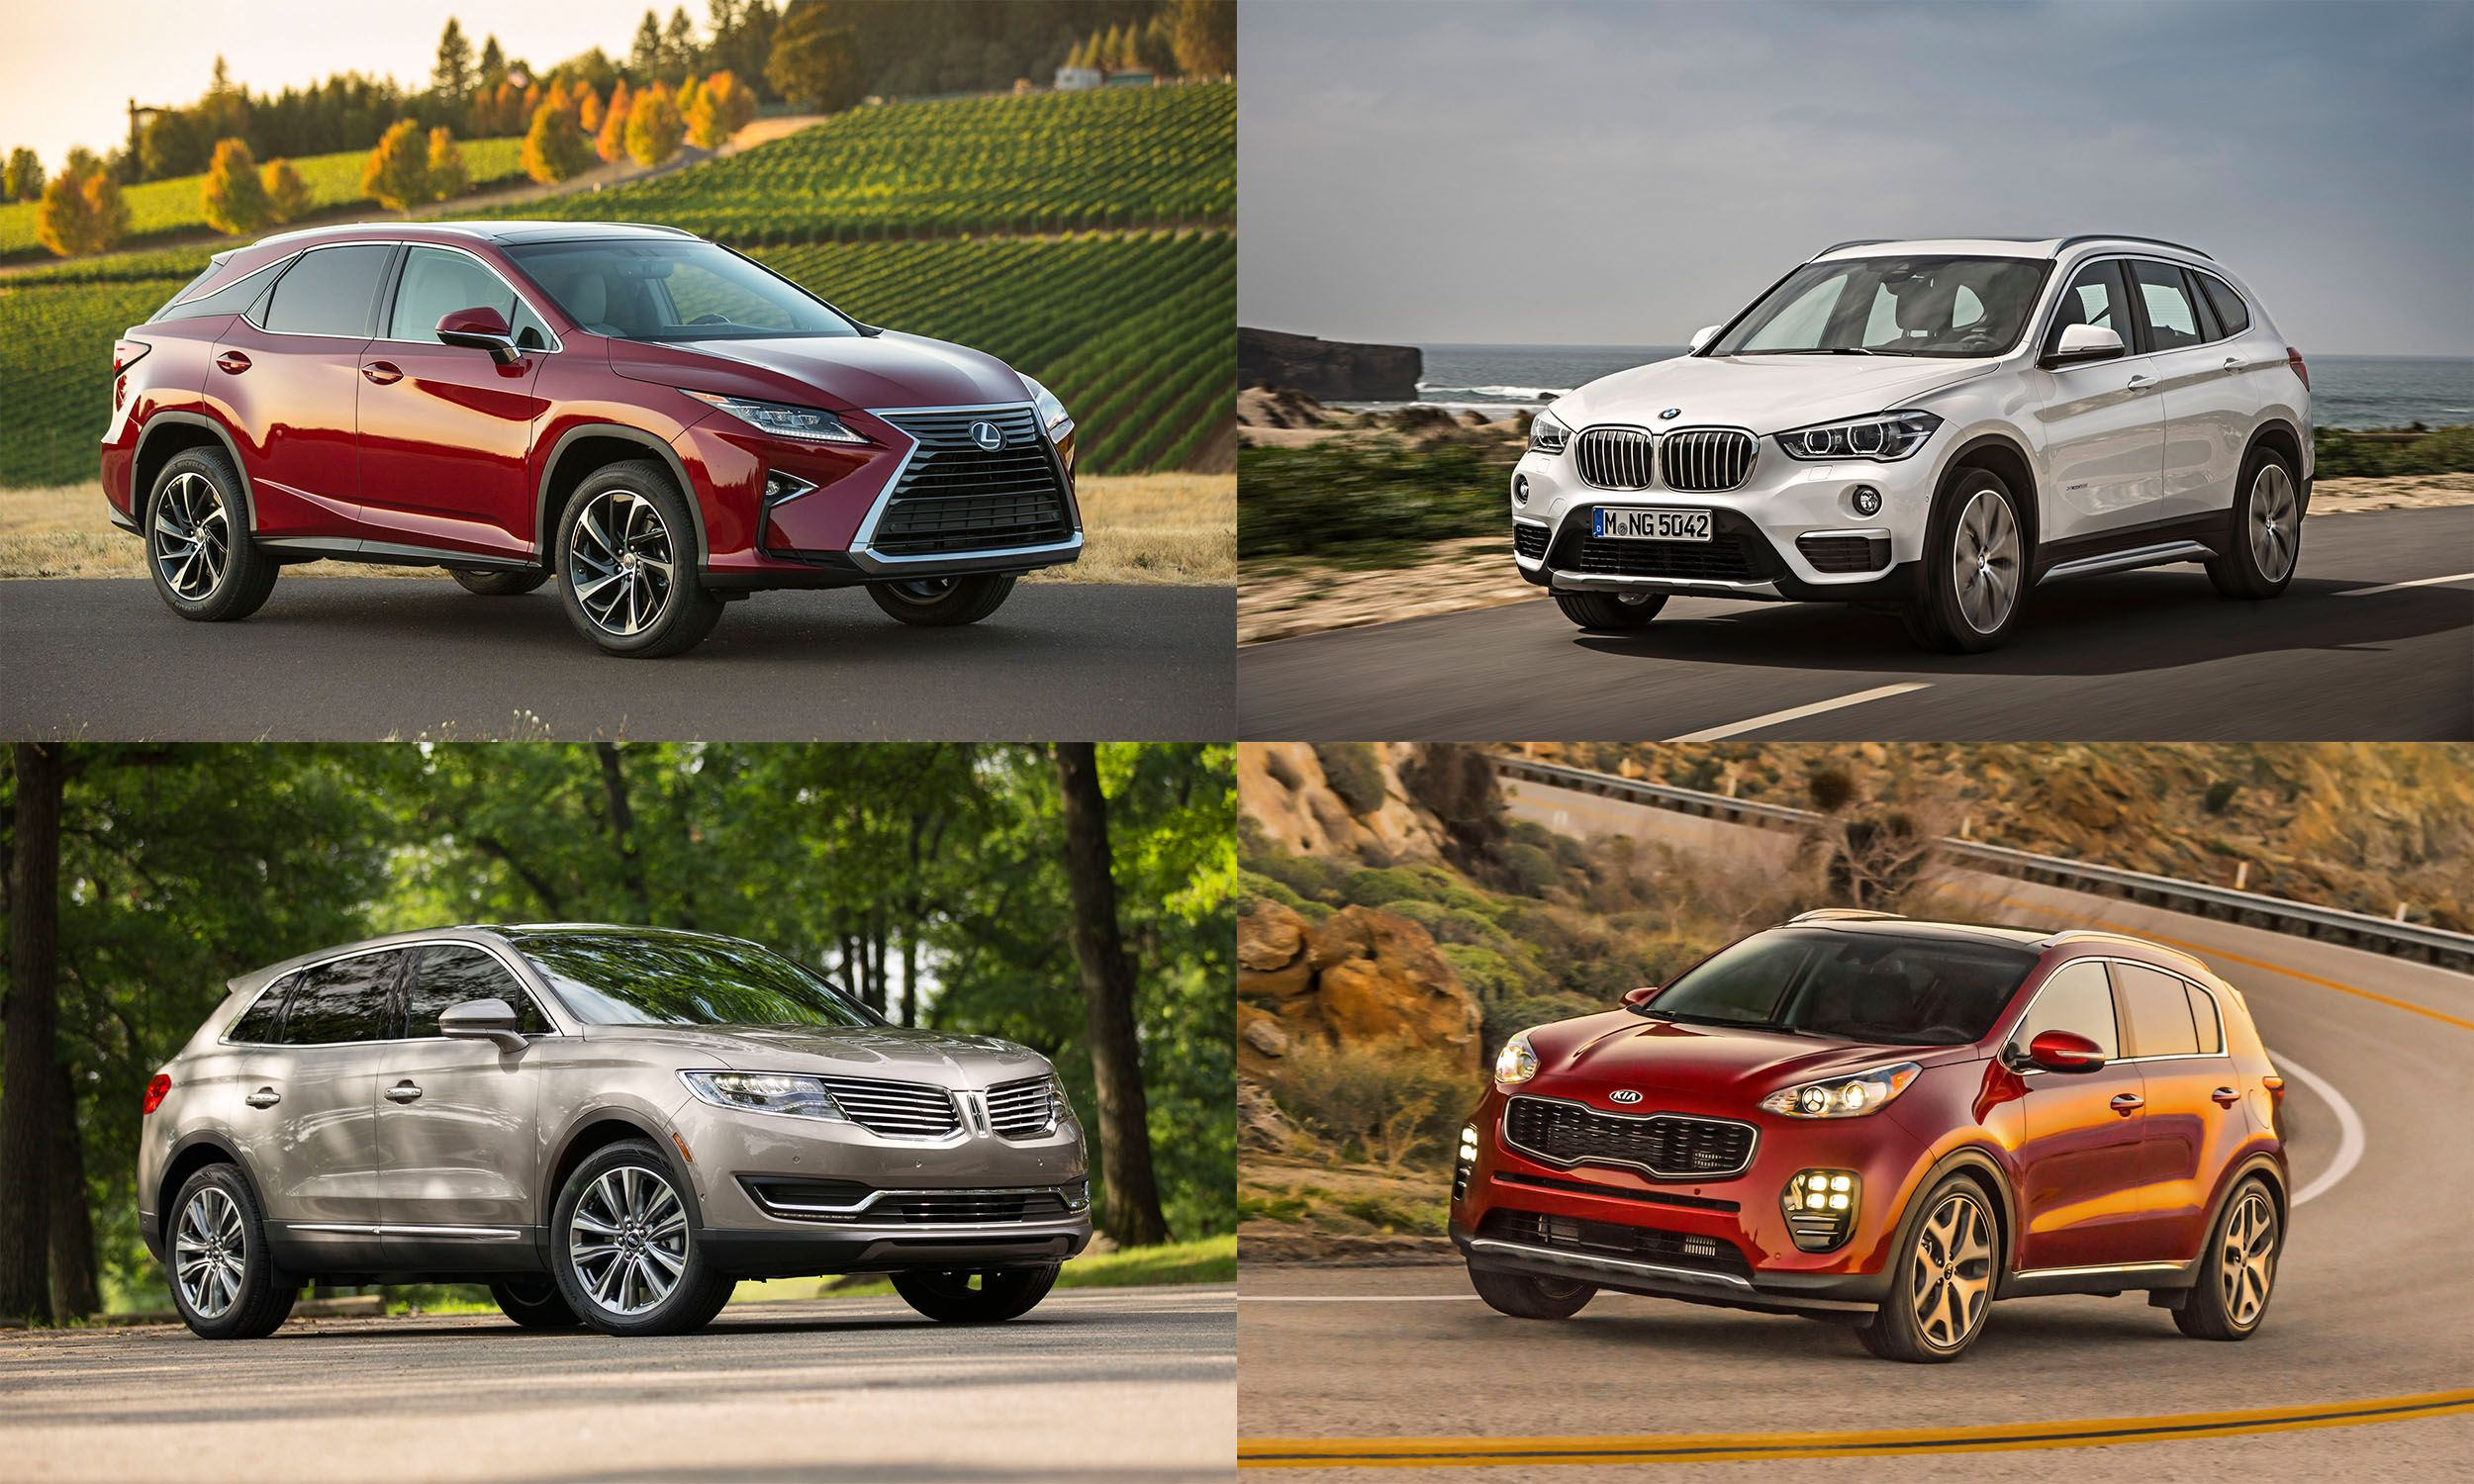 Safest SUVs in America | Top rated suvs and Cars